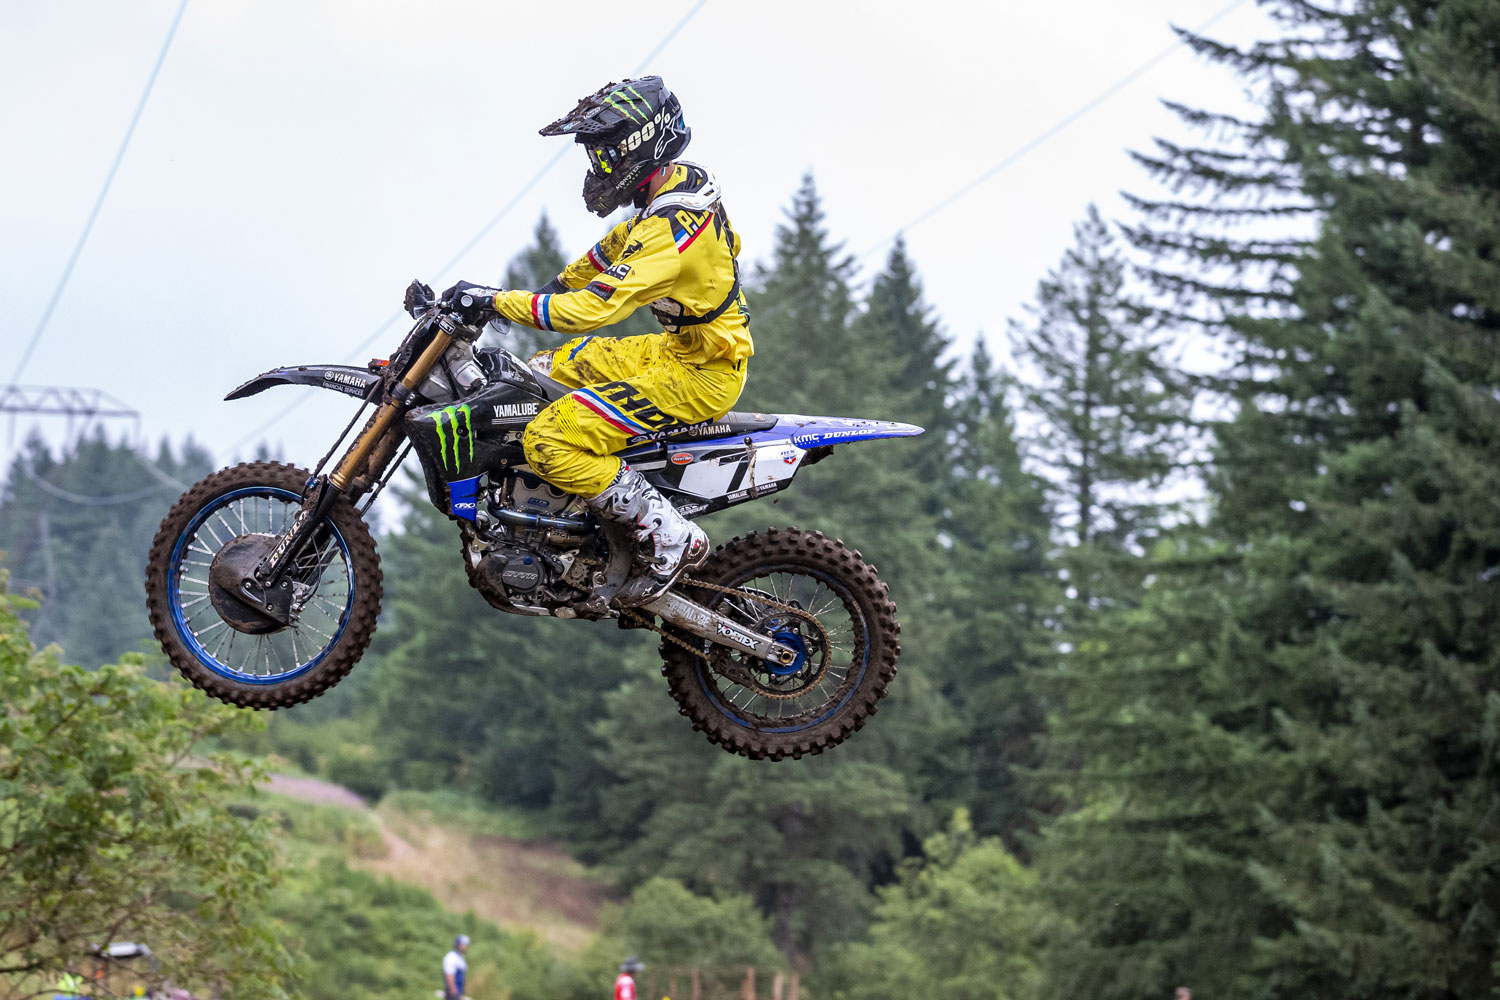 PLESSINGER_2019_WASHOUGAL_web.jpg